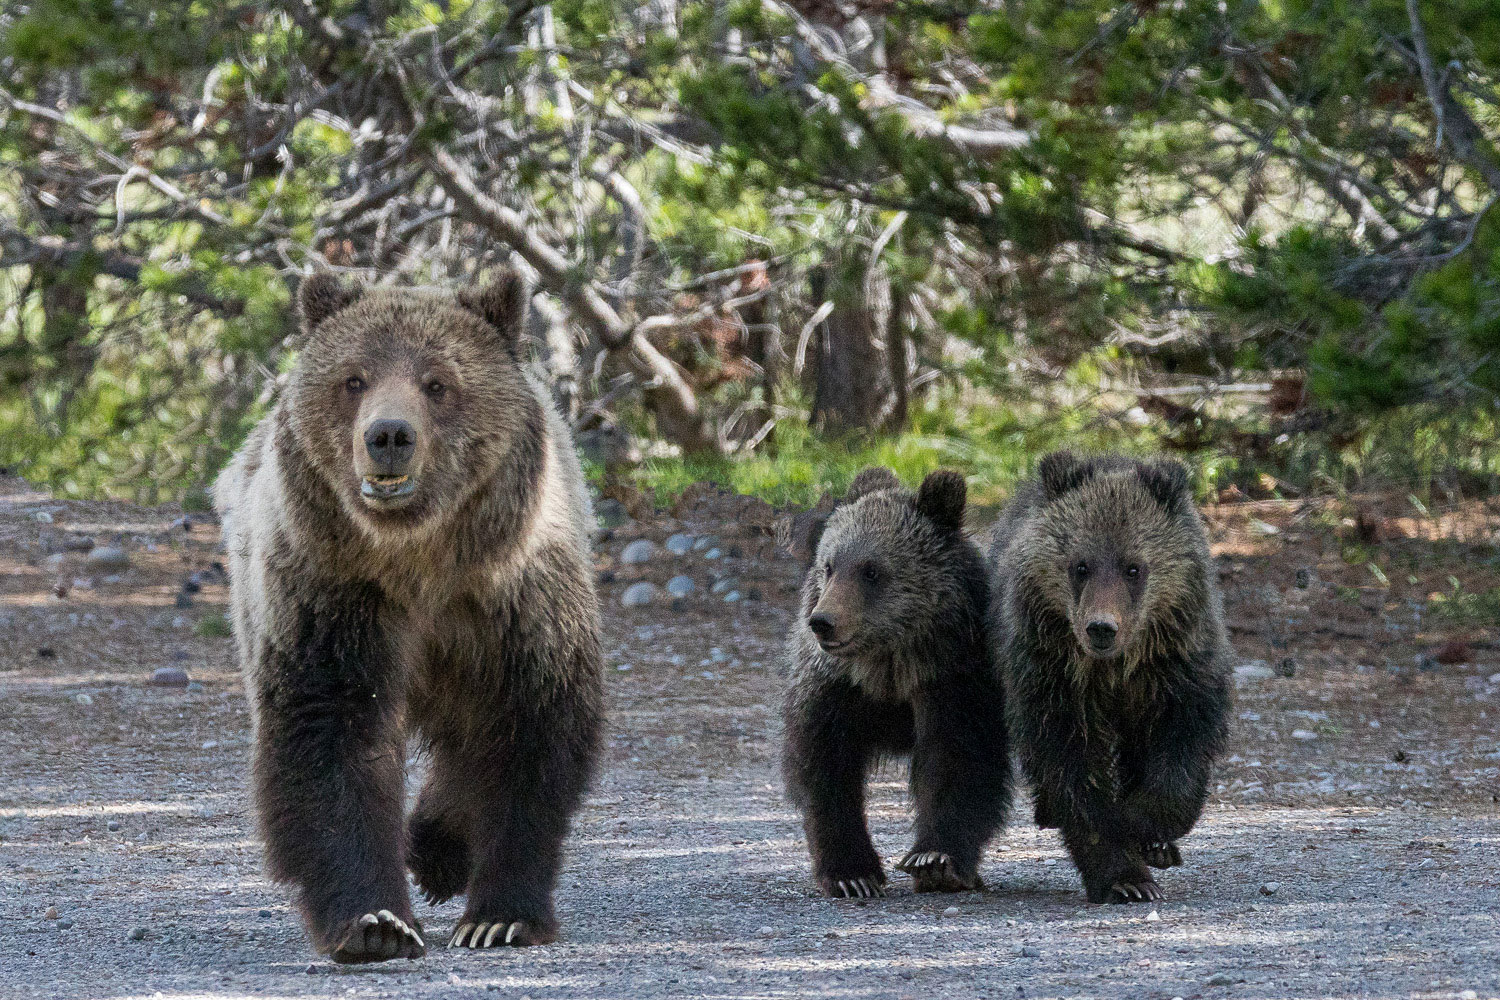 blondie, grizzly, bear, grand teton, photo, image, spring, cub, 2018, photo